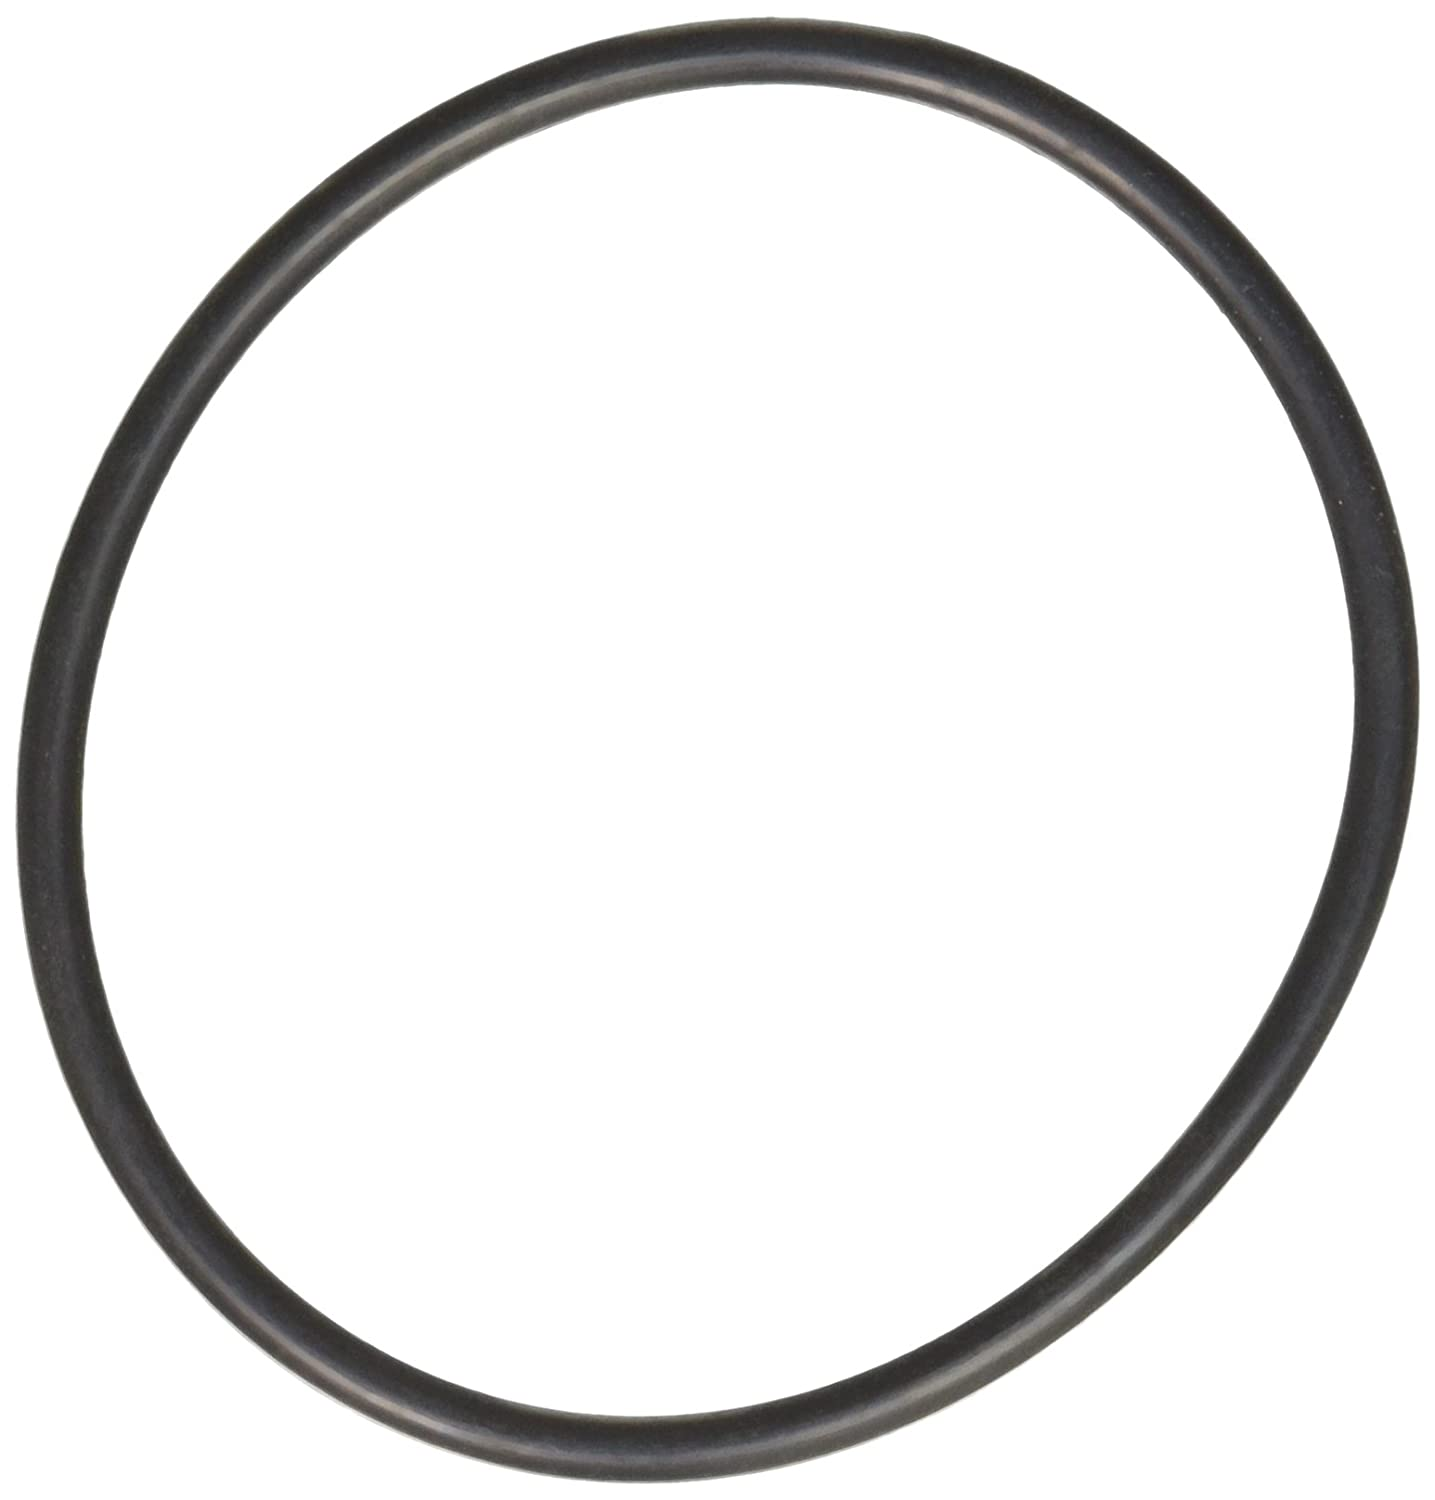 MAHLE Original C32308 Engine Coolant Thermostat Housing Gasket, 1 Pack